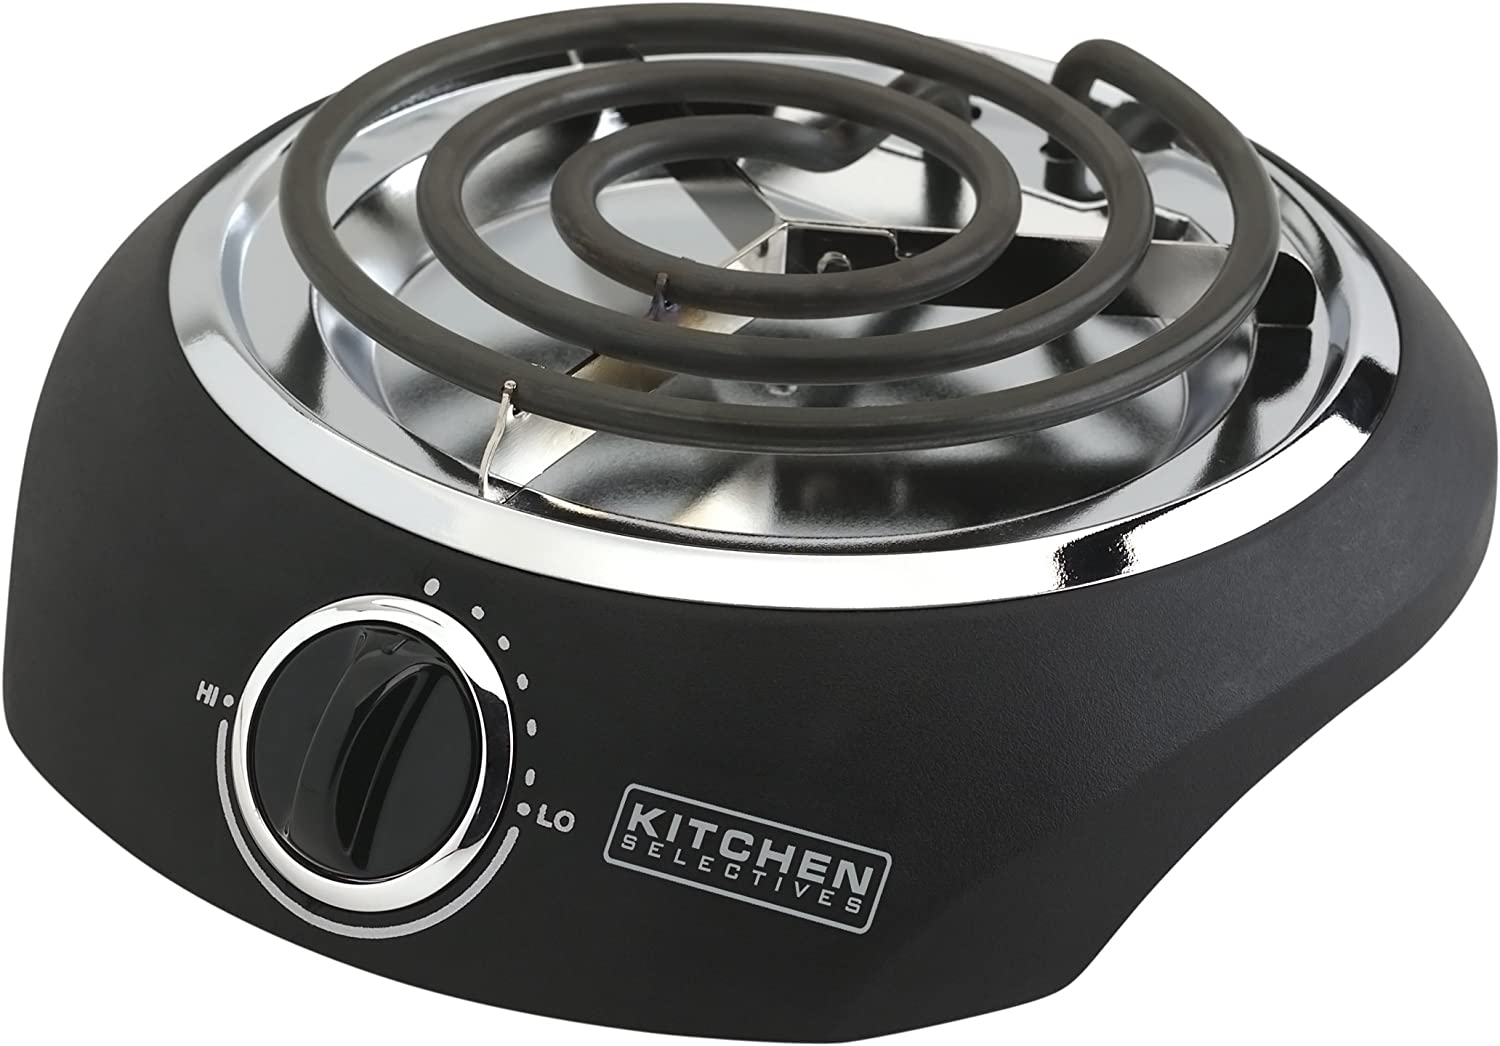 Kitchen Selectives SB-1 Kitchen Selectives Single Burner 1000 watts, Black